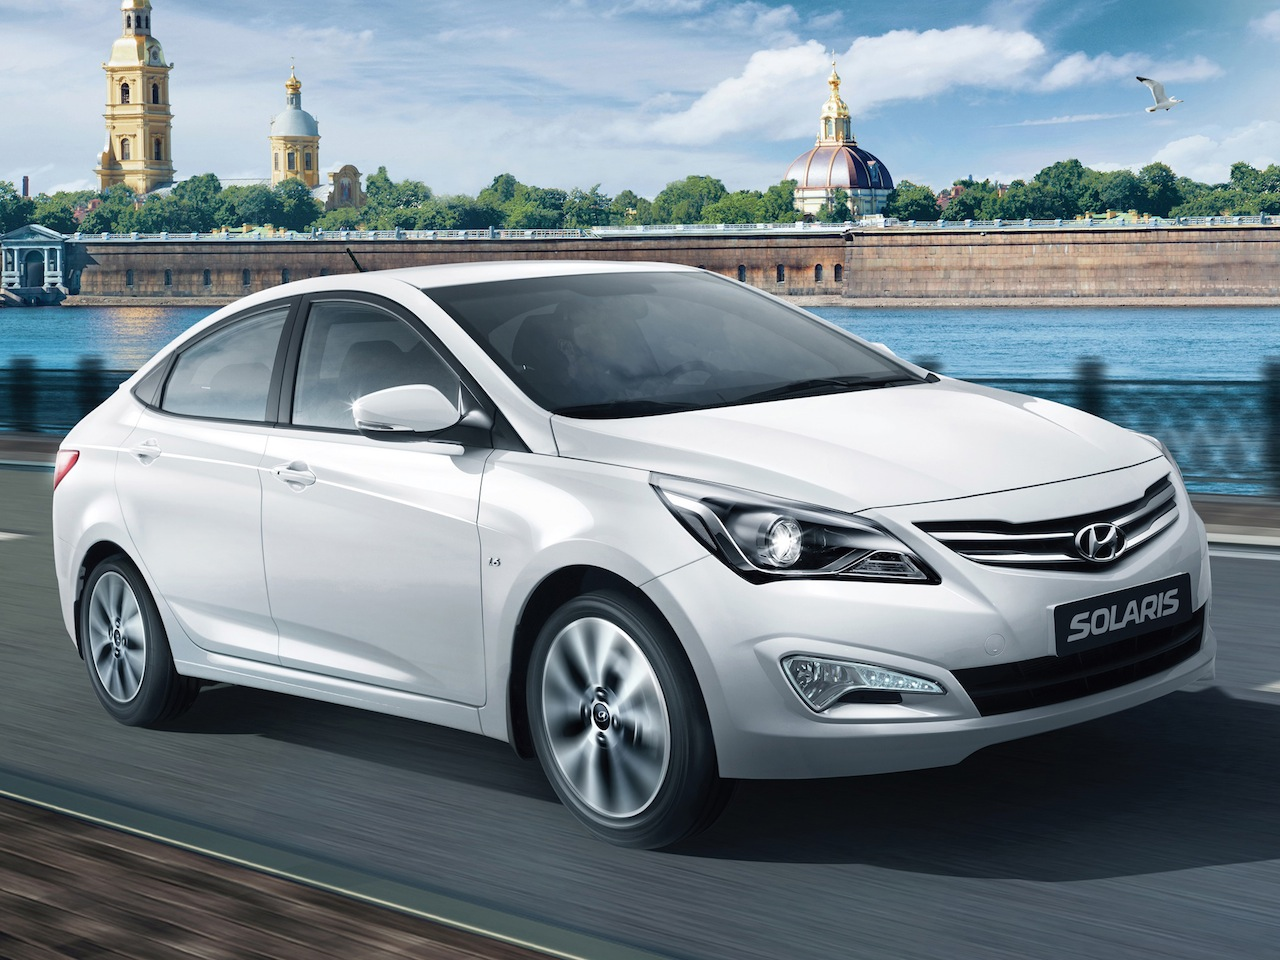 Hyundai Solaris Facelift Russia Press Shots Front Quarter